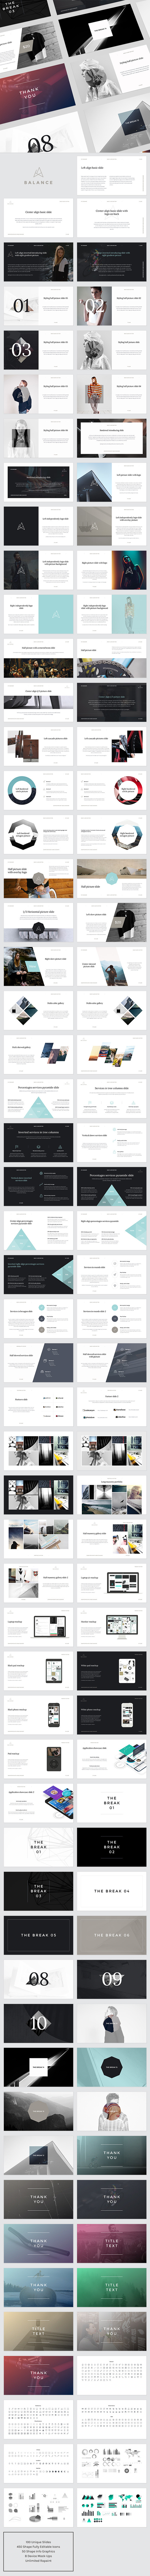 Balance PowerPoint Presentation - Creative PowerPoint Templates